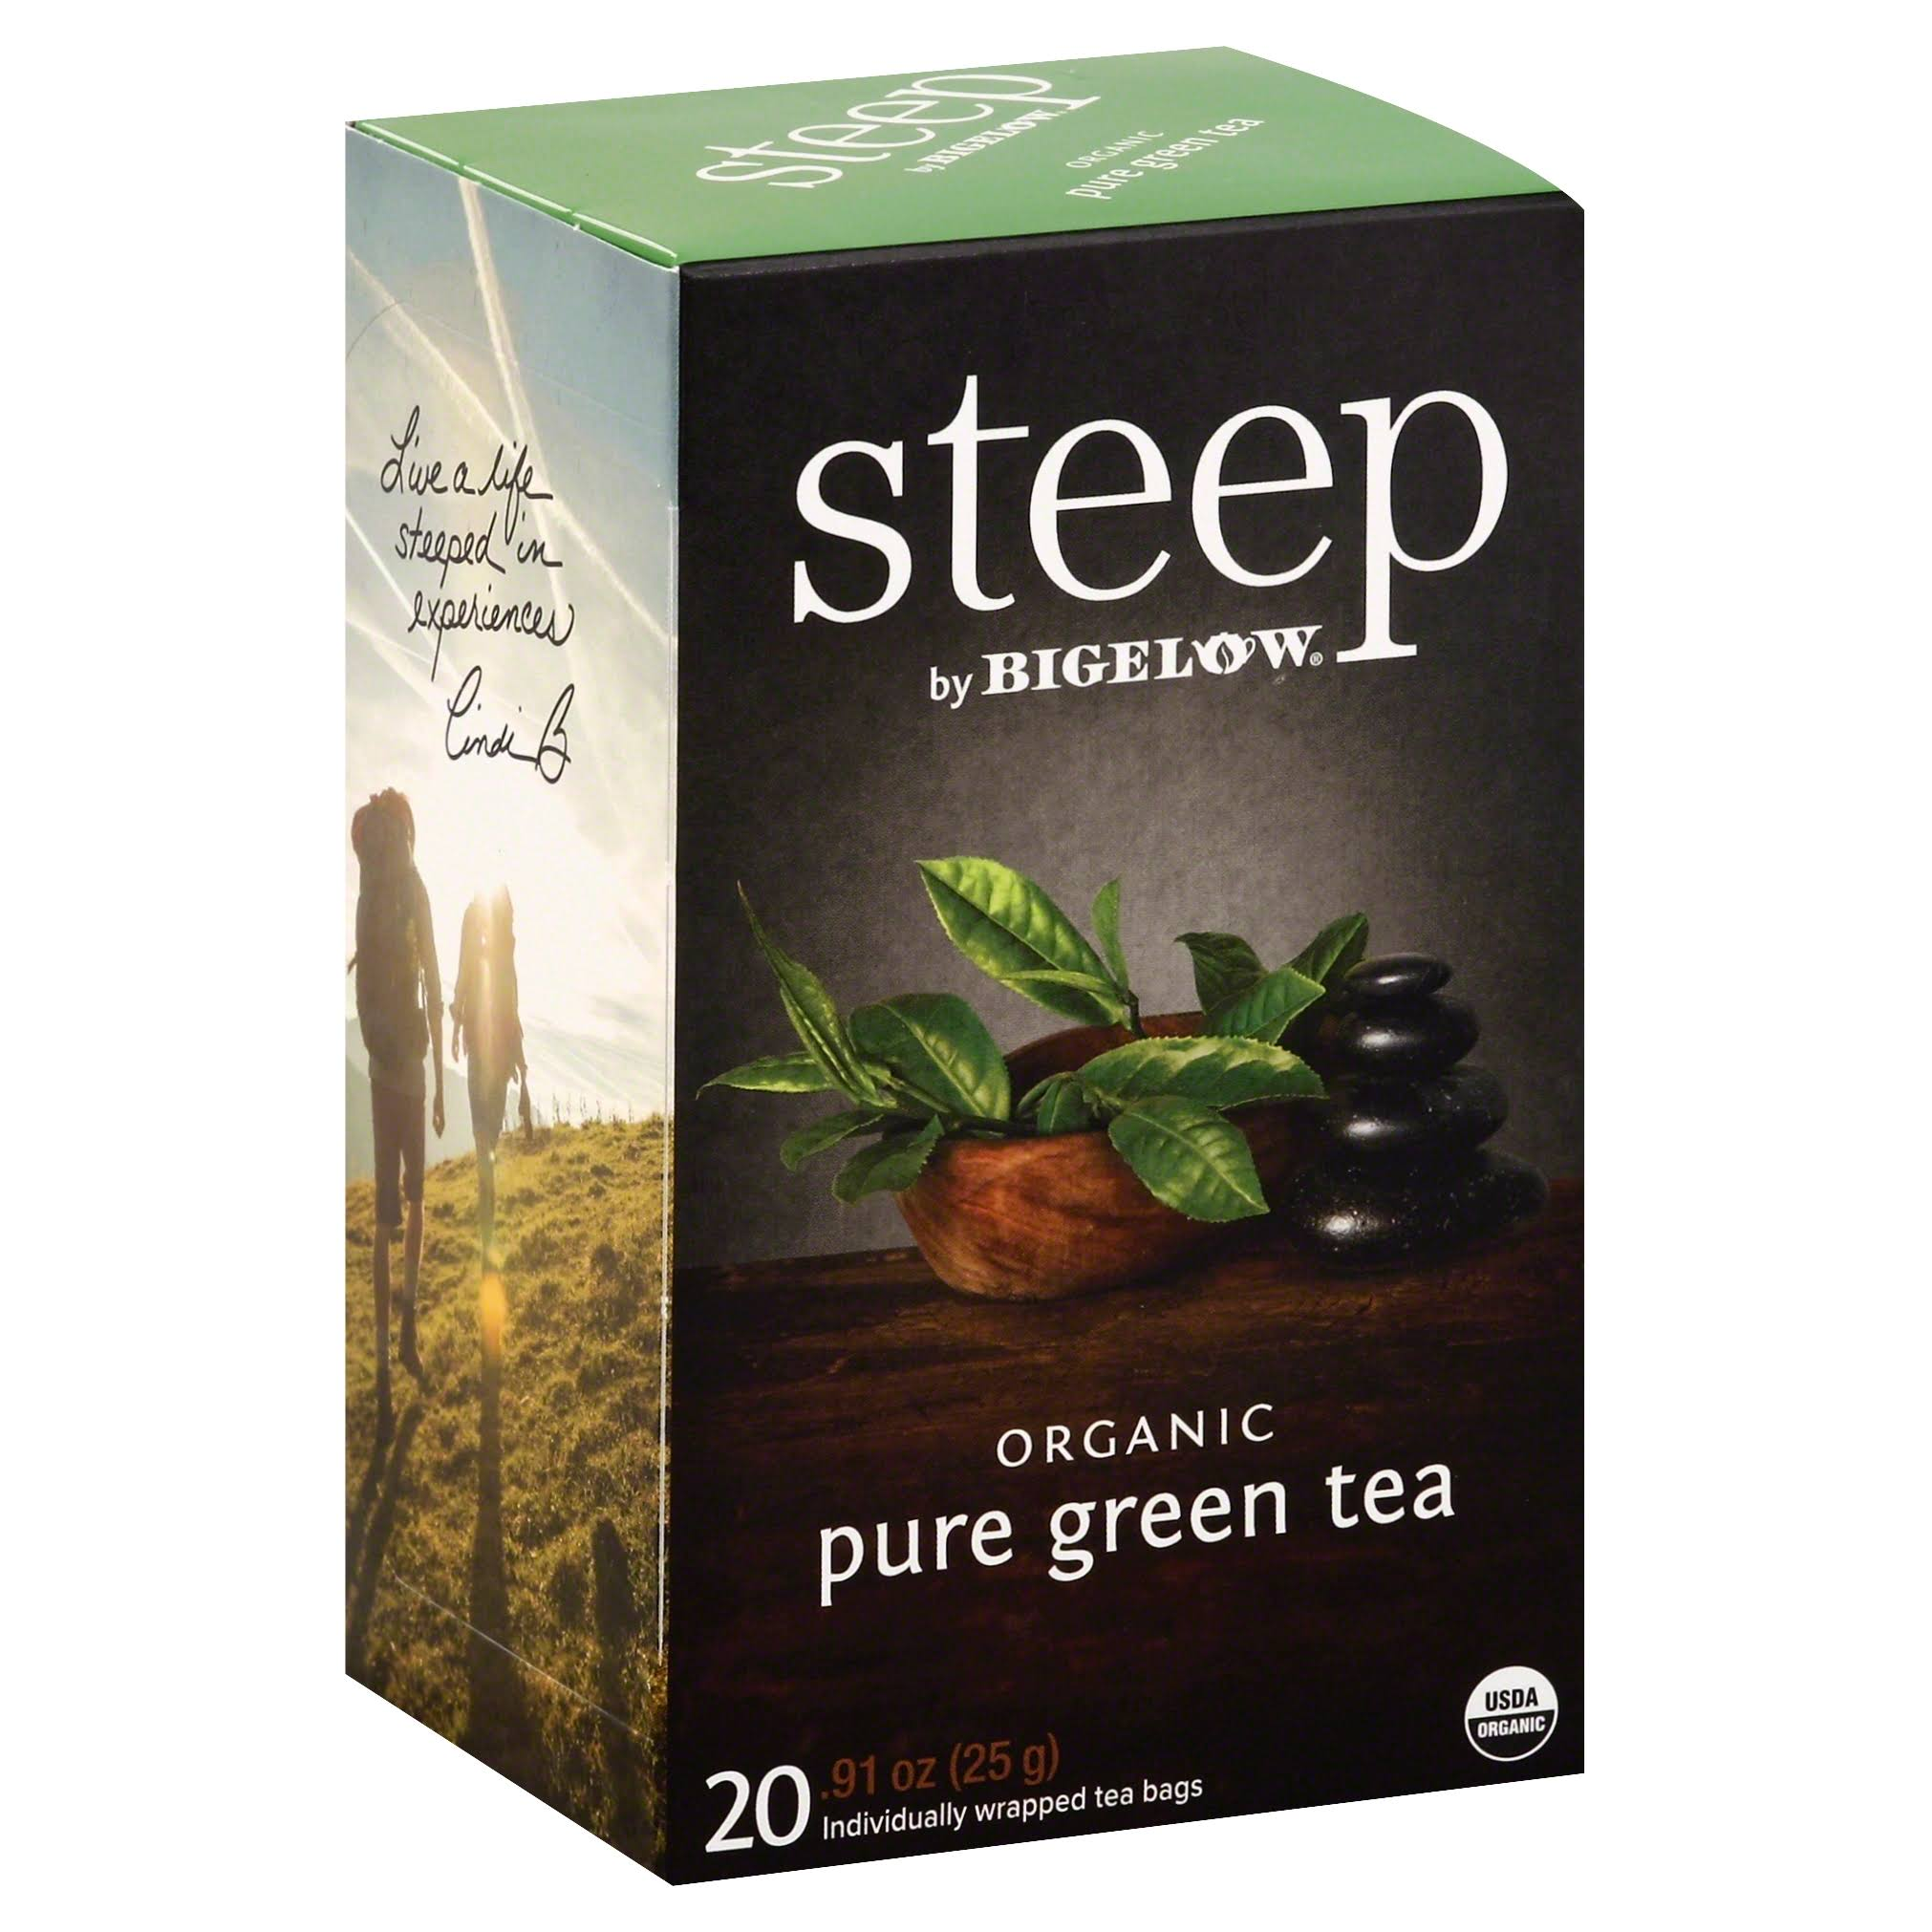 Bigelow Steep Organic Pure Green Tea - 20ct